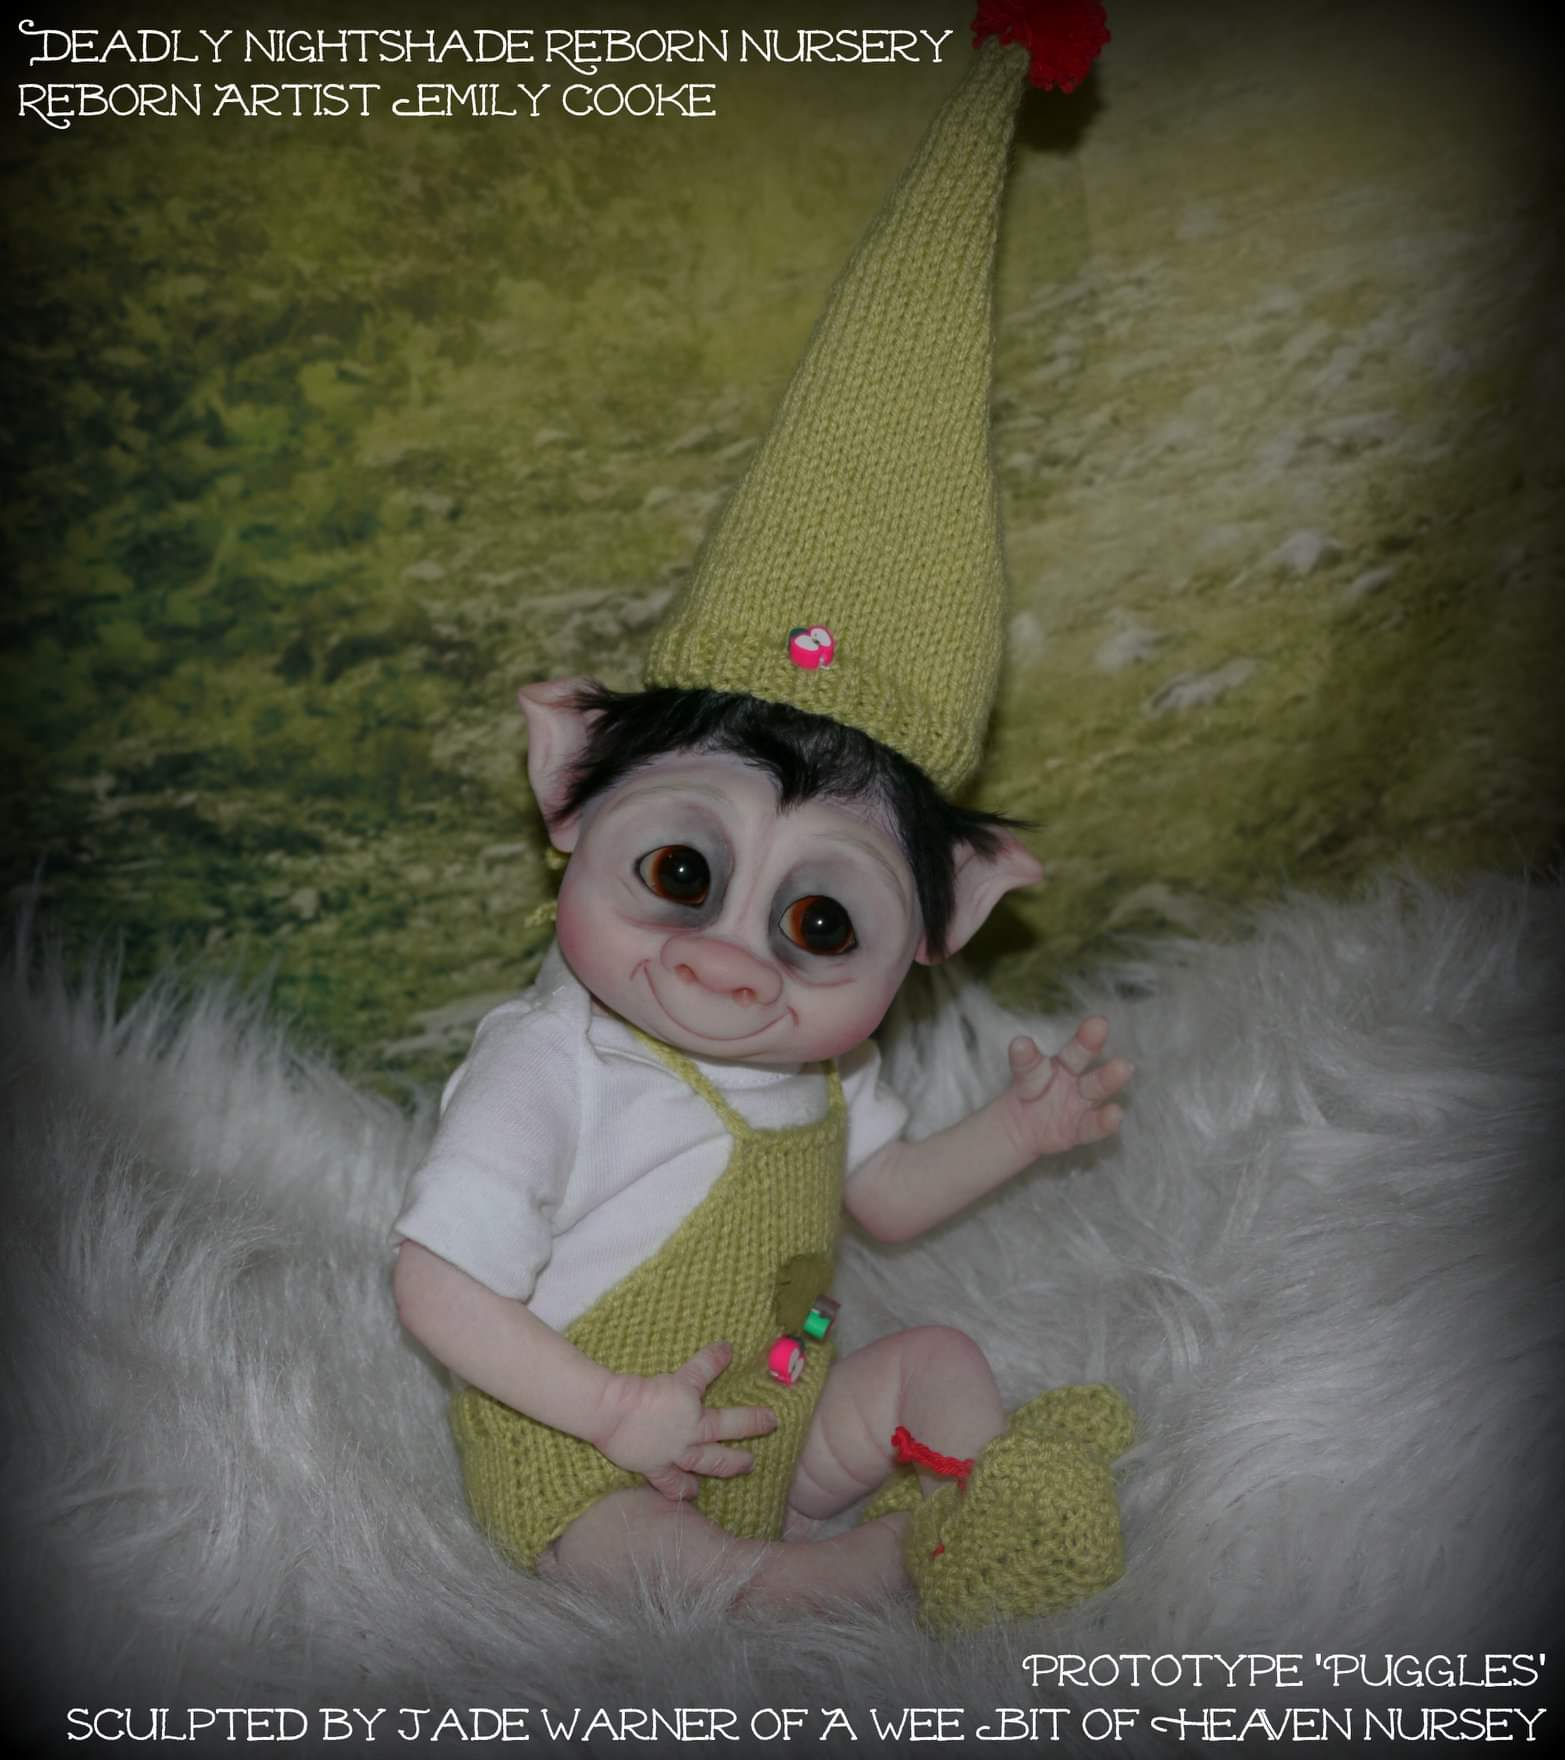 Puggles Baby Garden Gnome/Goblin -Pay in Full-